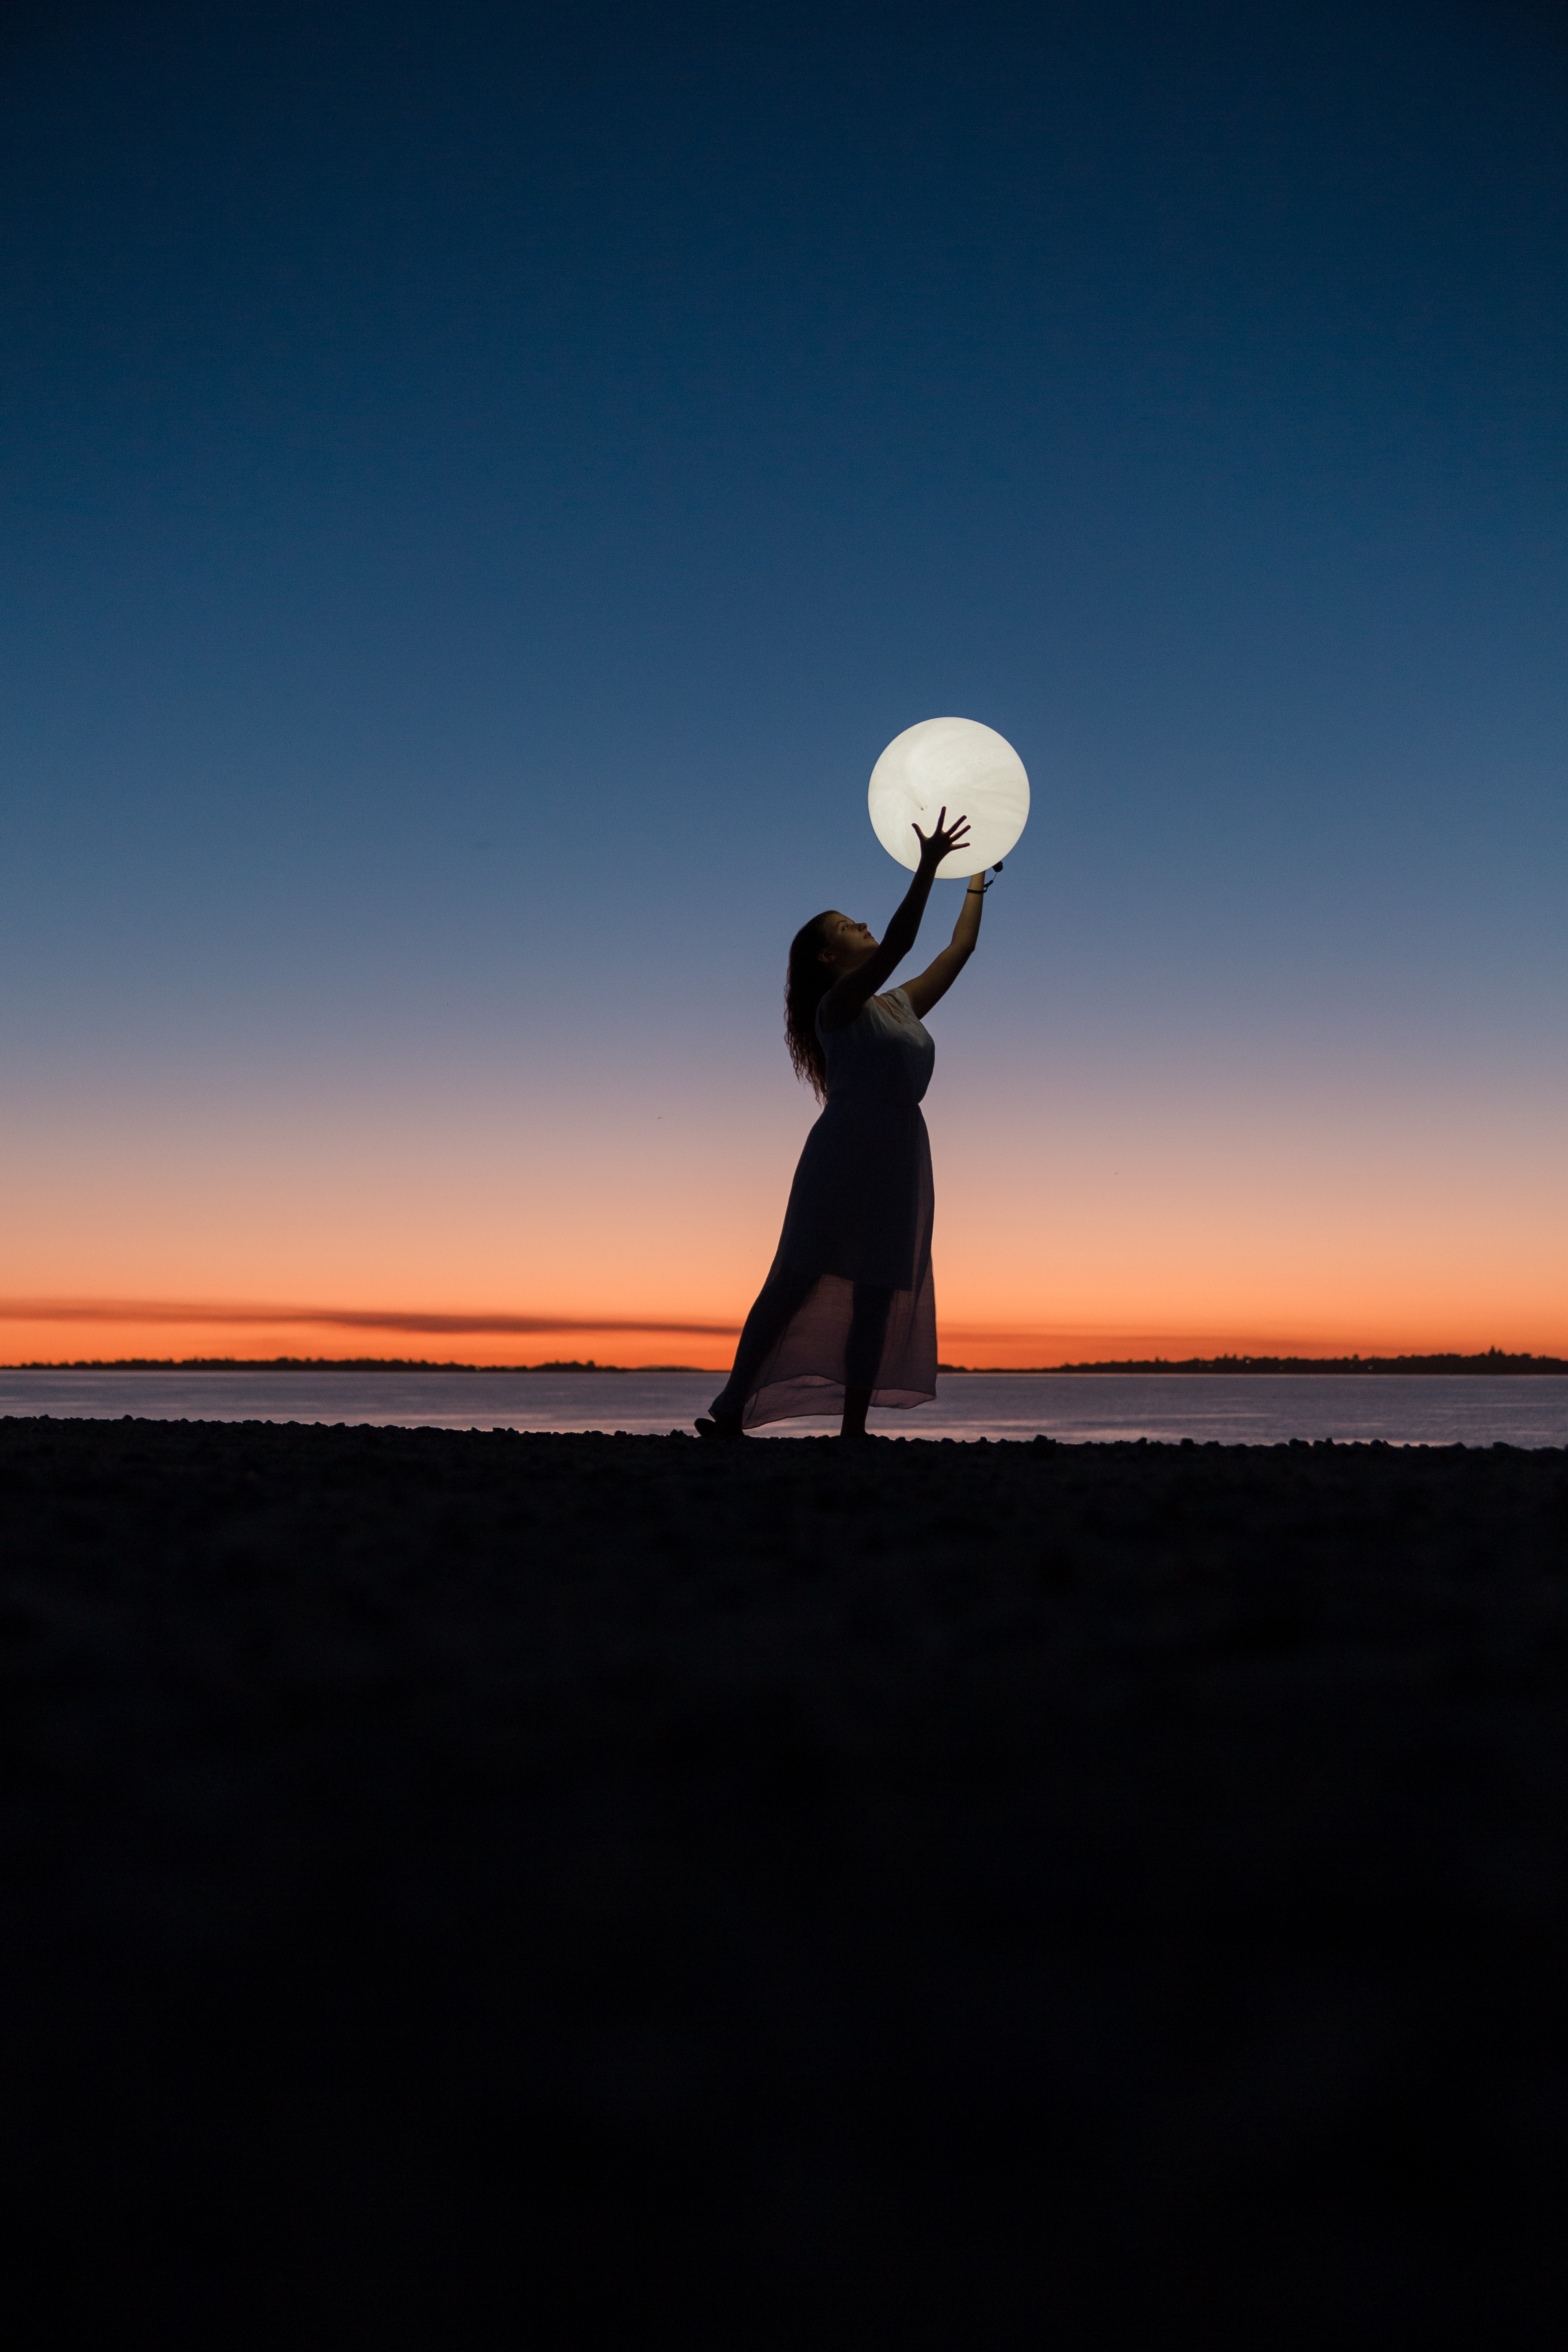 Girl 4k Wallpaper Woman Moon Beach Sunset Photography 257